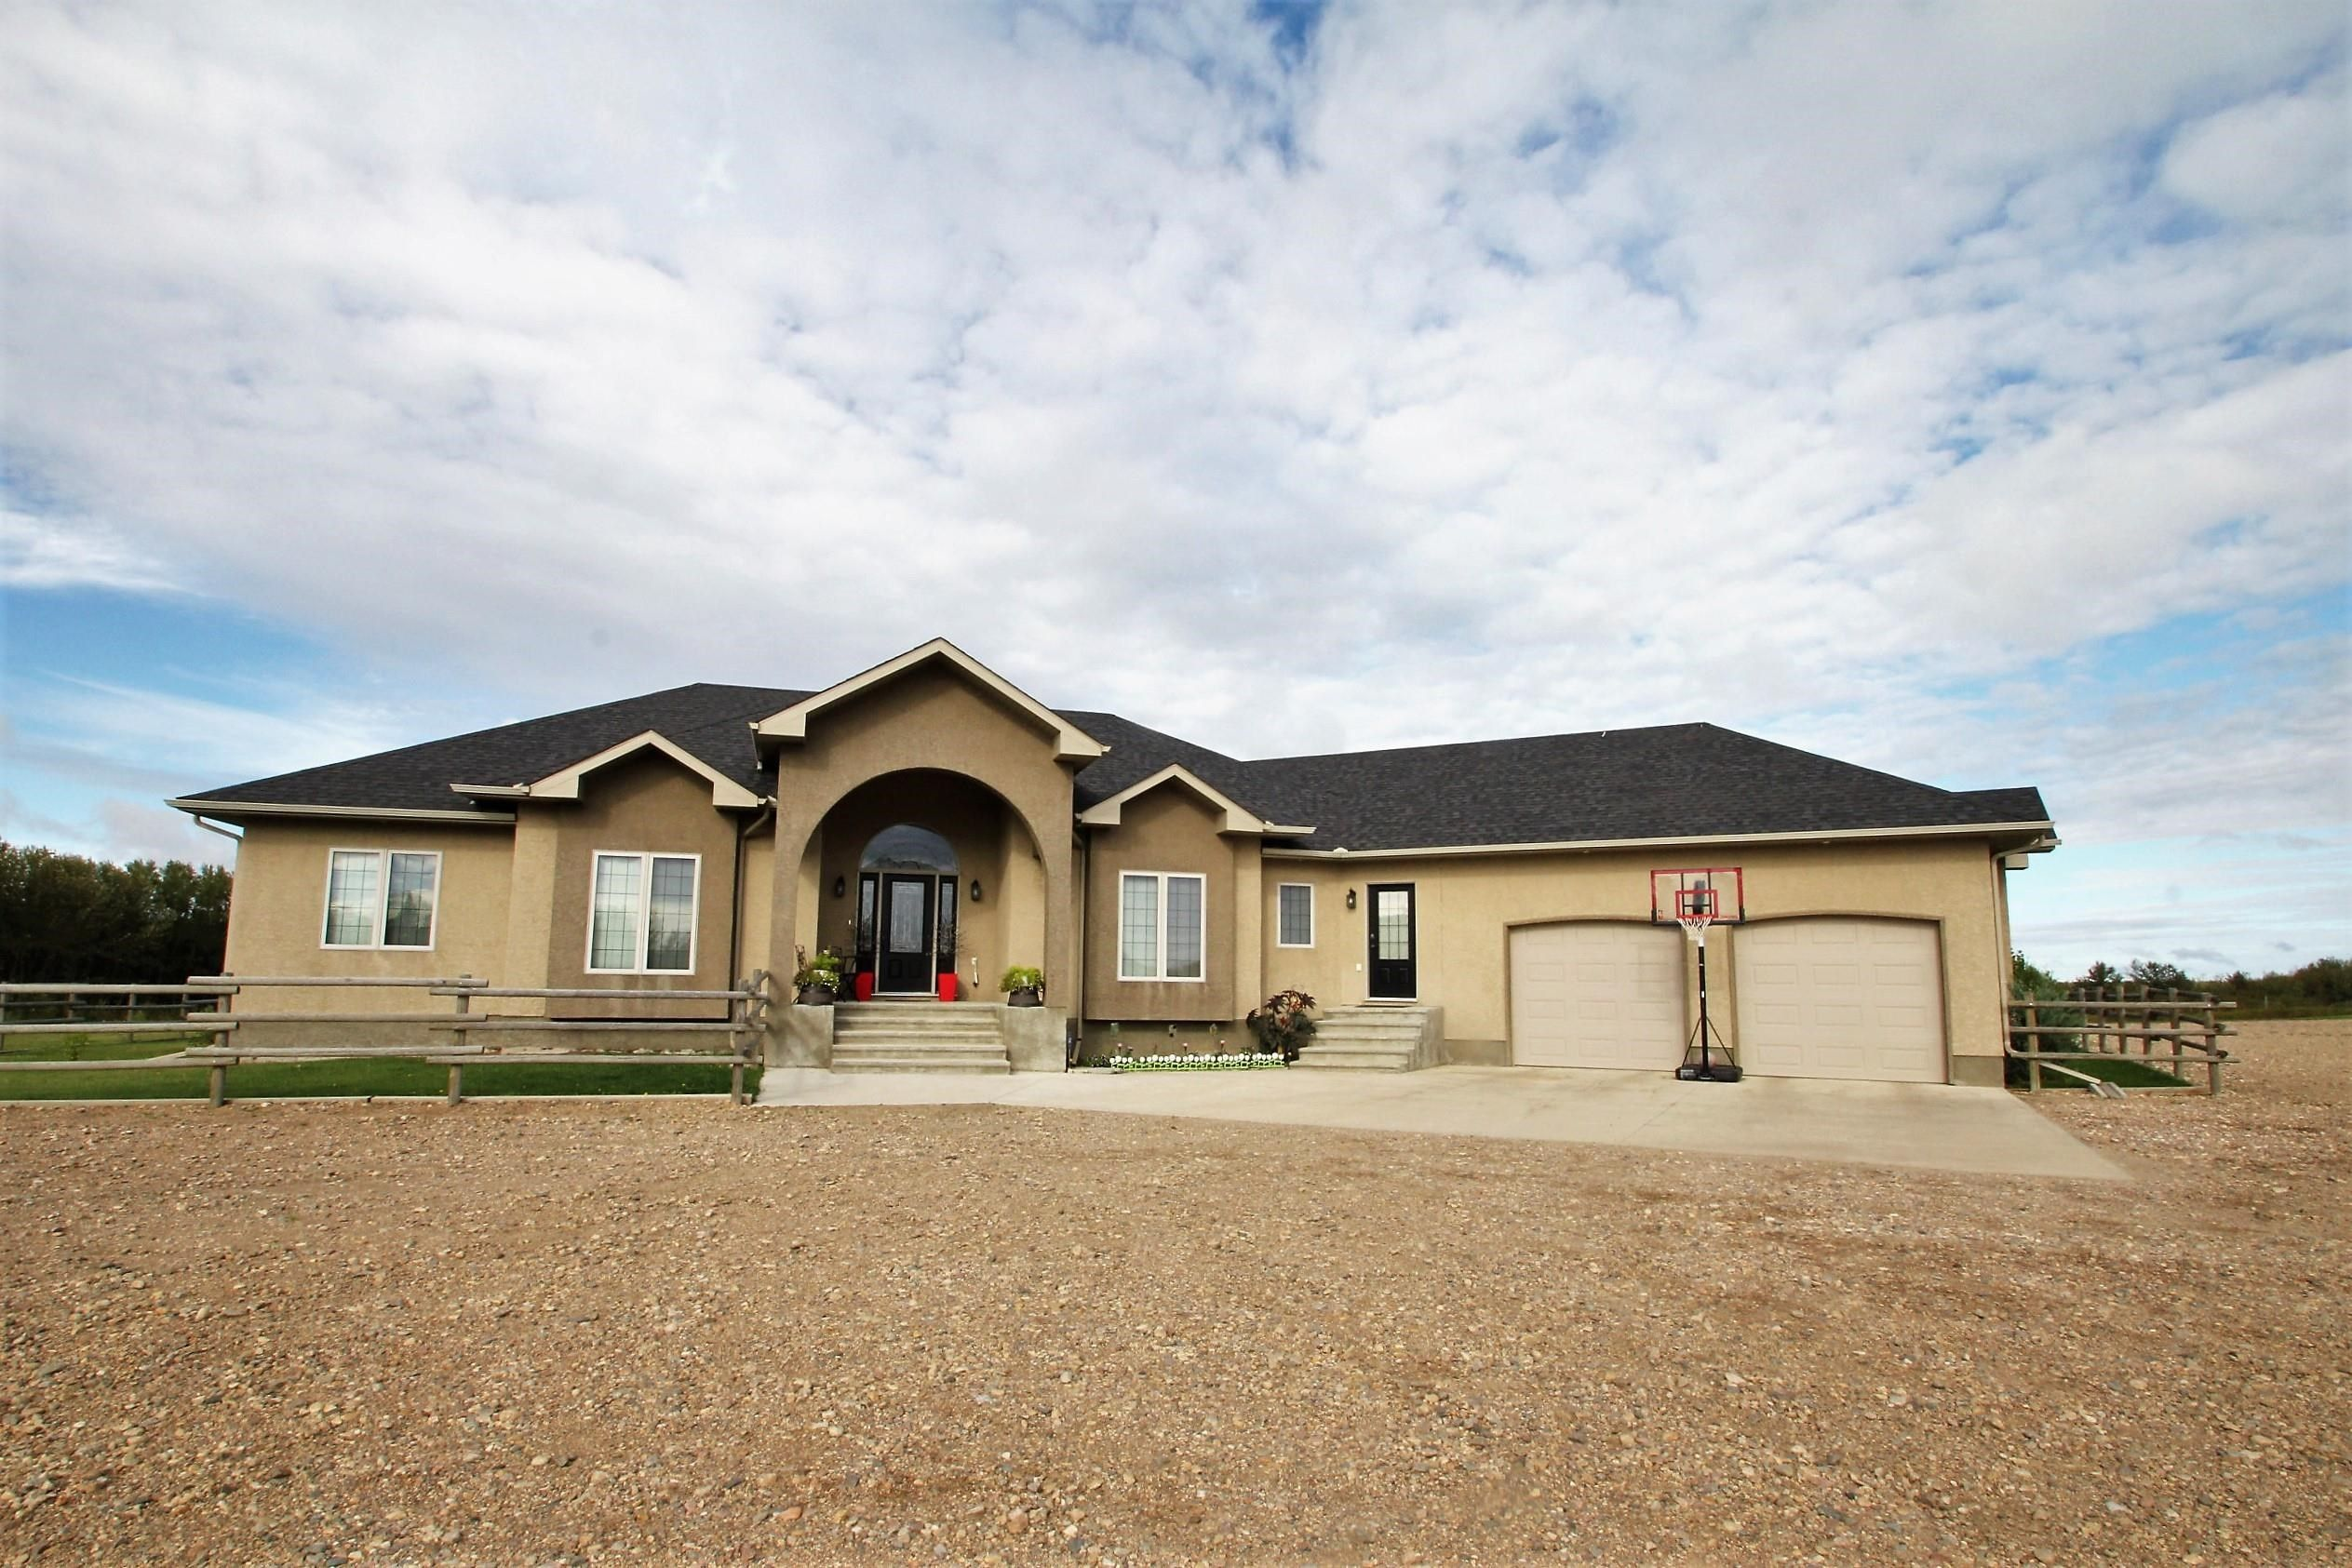 Main Photo: 58304 Secondary 881: Rural St. Paul County House for sale : MLS®# E4265416